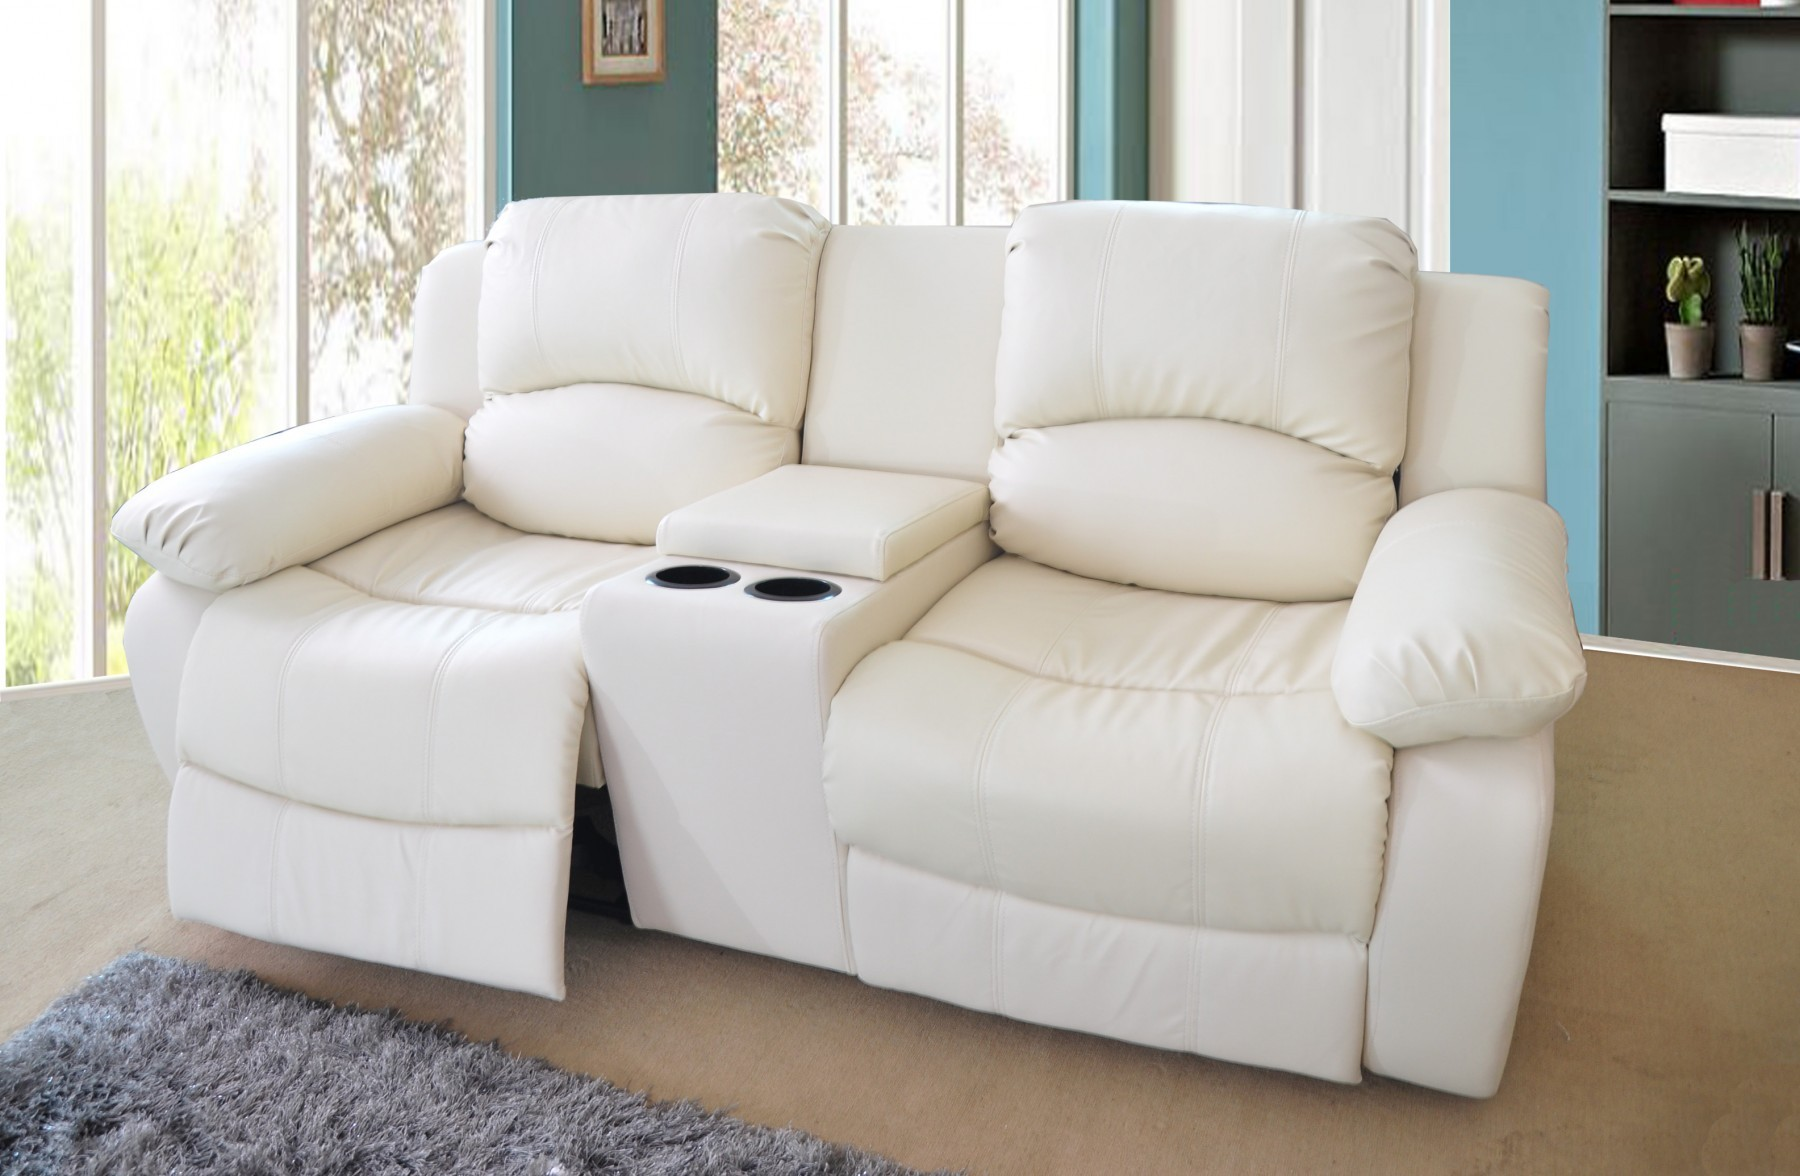 ... two seater recliner sofa excellent vancouver 2 seater bonded leather recliner  sofa with drinks layout N10KLMAO